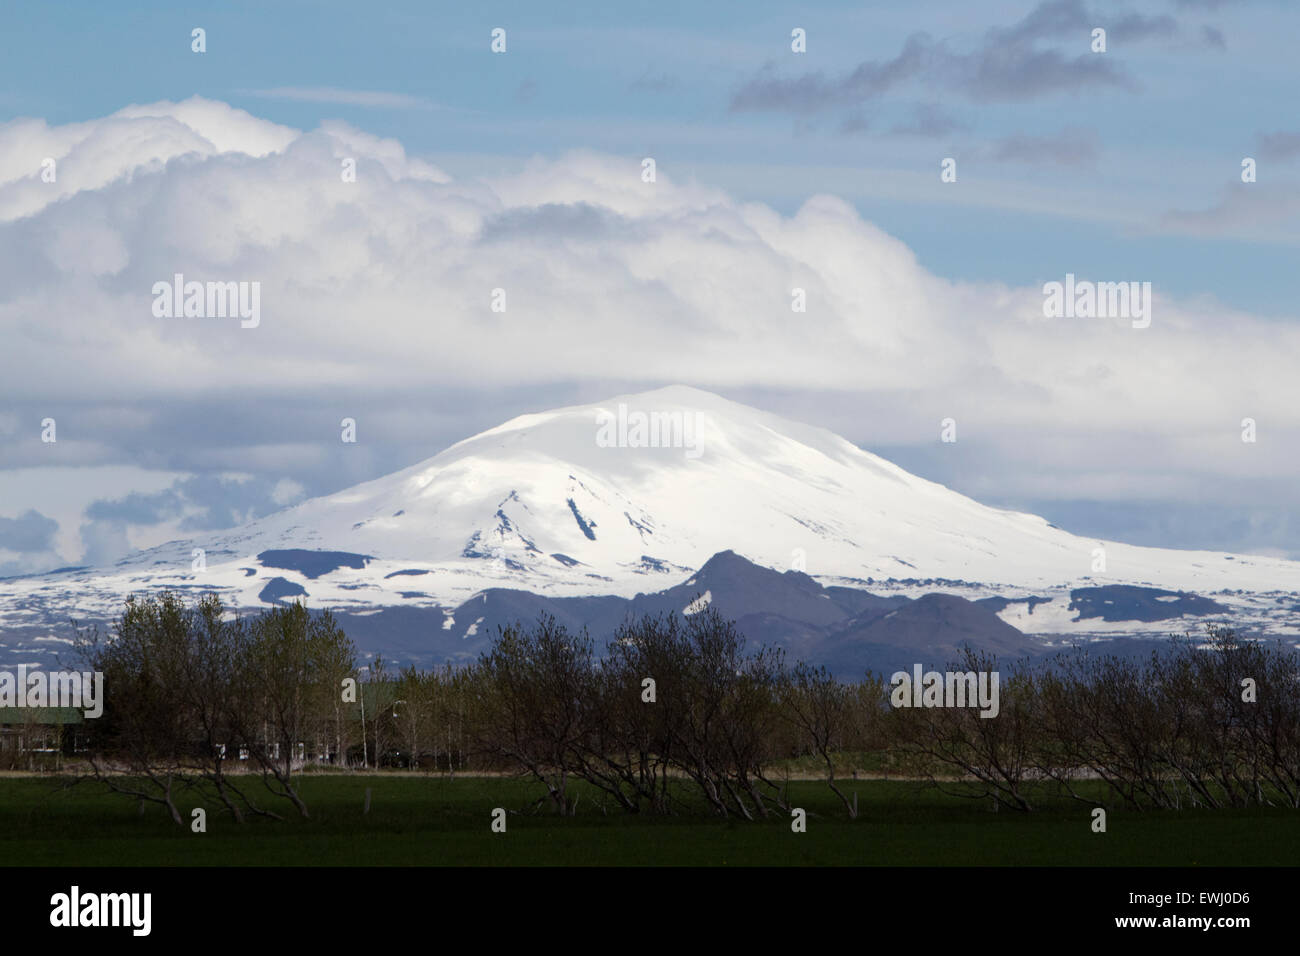 snow capped hekla stratovolcano volcano in southern Iceland - Stock Image